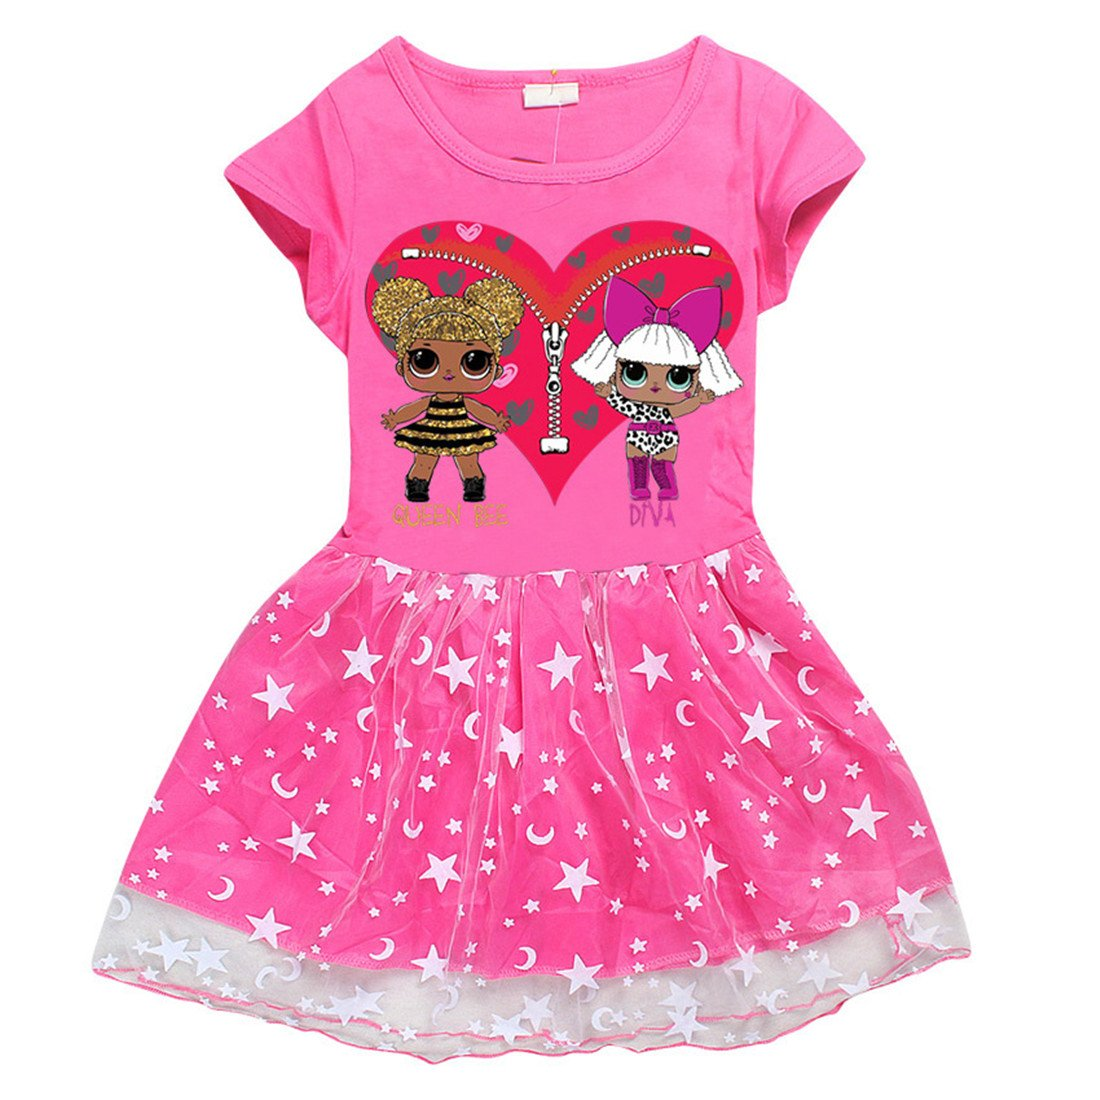 DGFSTM Cute Cartoon Printed Comfy Loose Fit Stitching Skirt Girls Dress